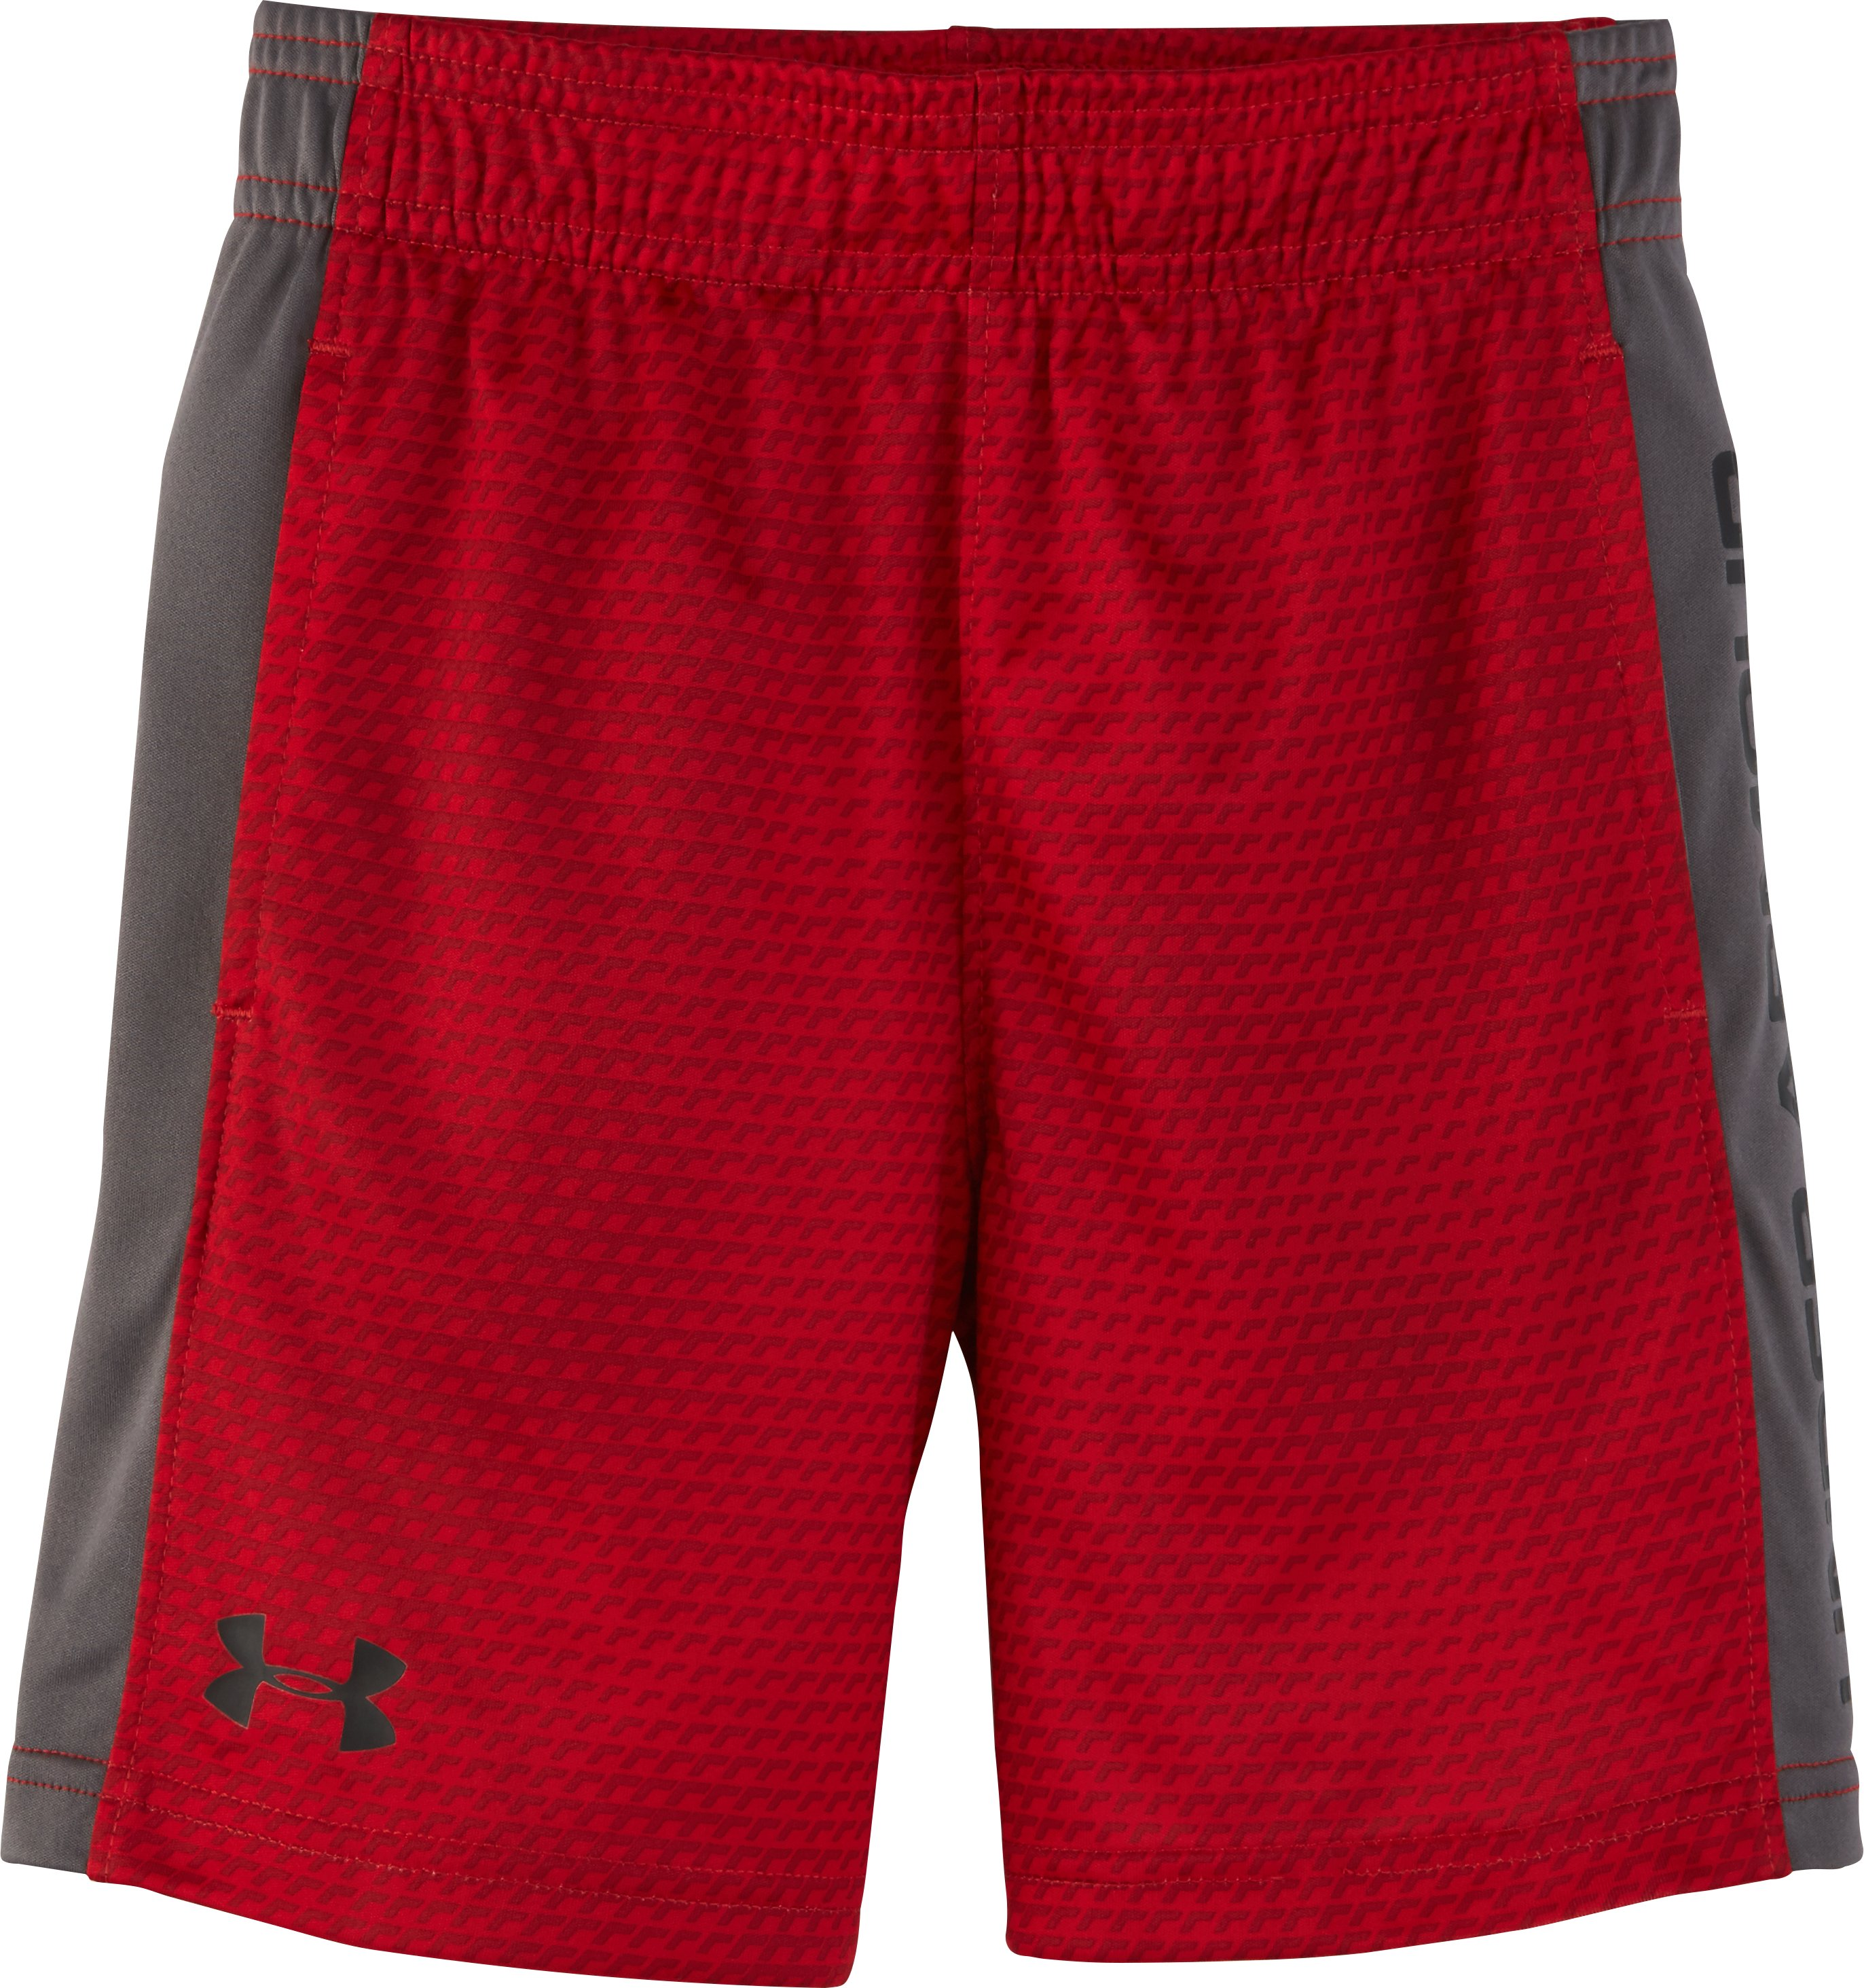 Boys' Pre-School UA Gameday Eliminator Shorts, Red